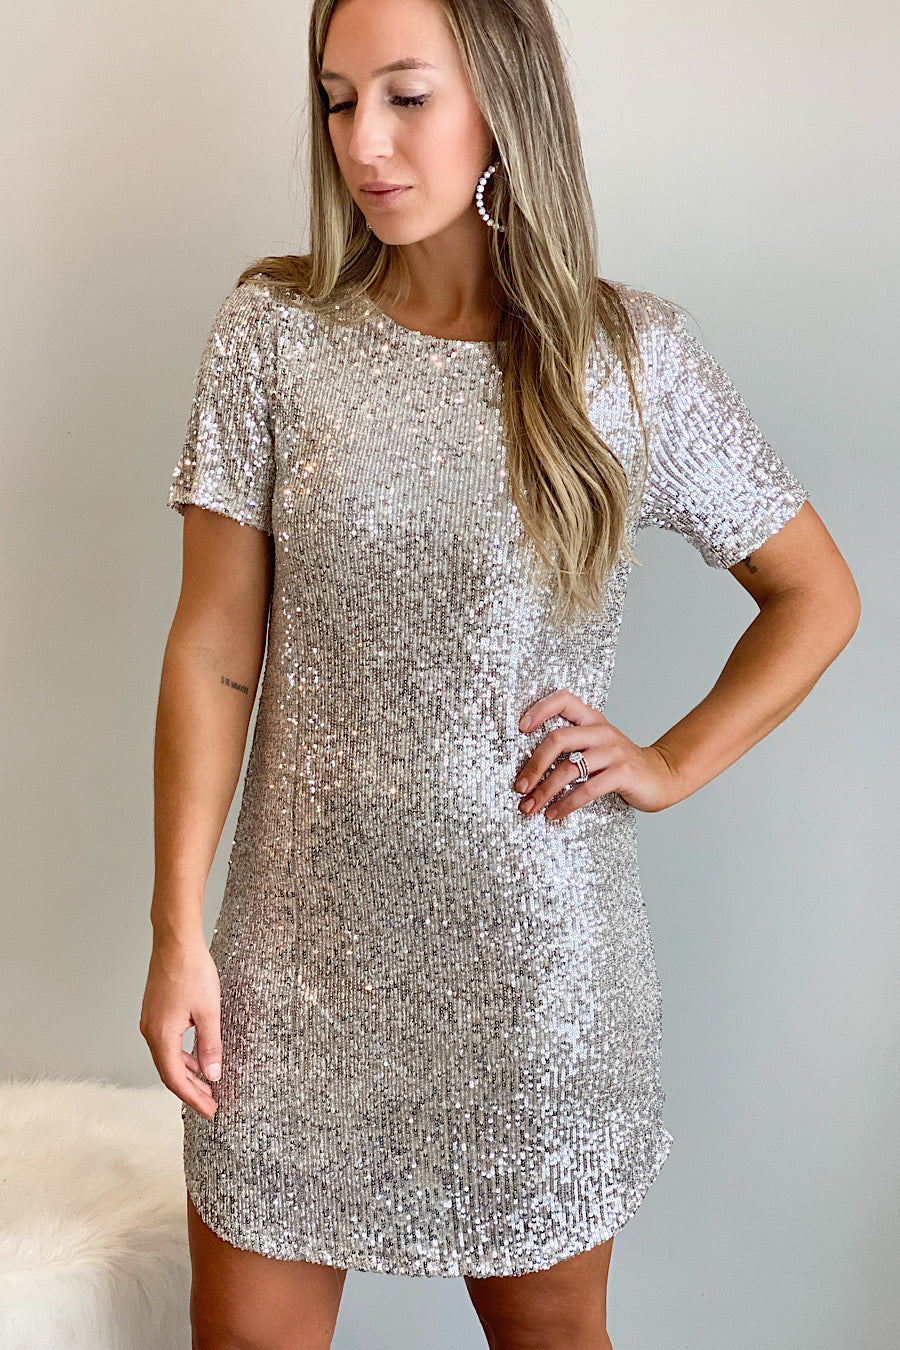 BB Dakota Hit the Lights Sequin Dress